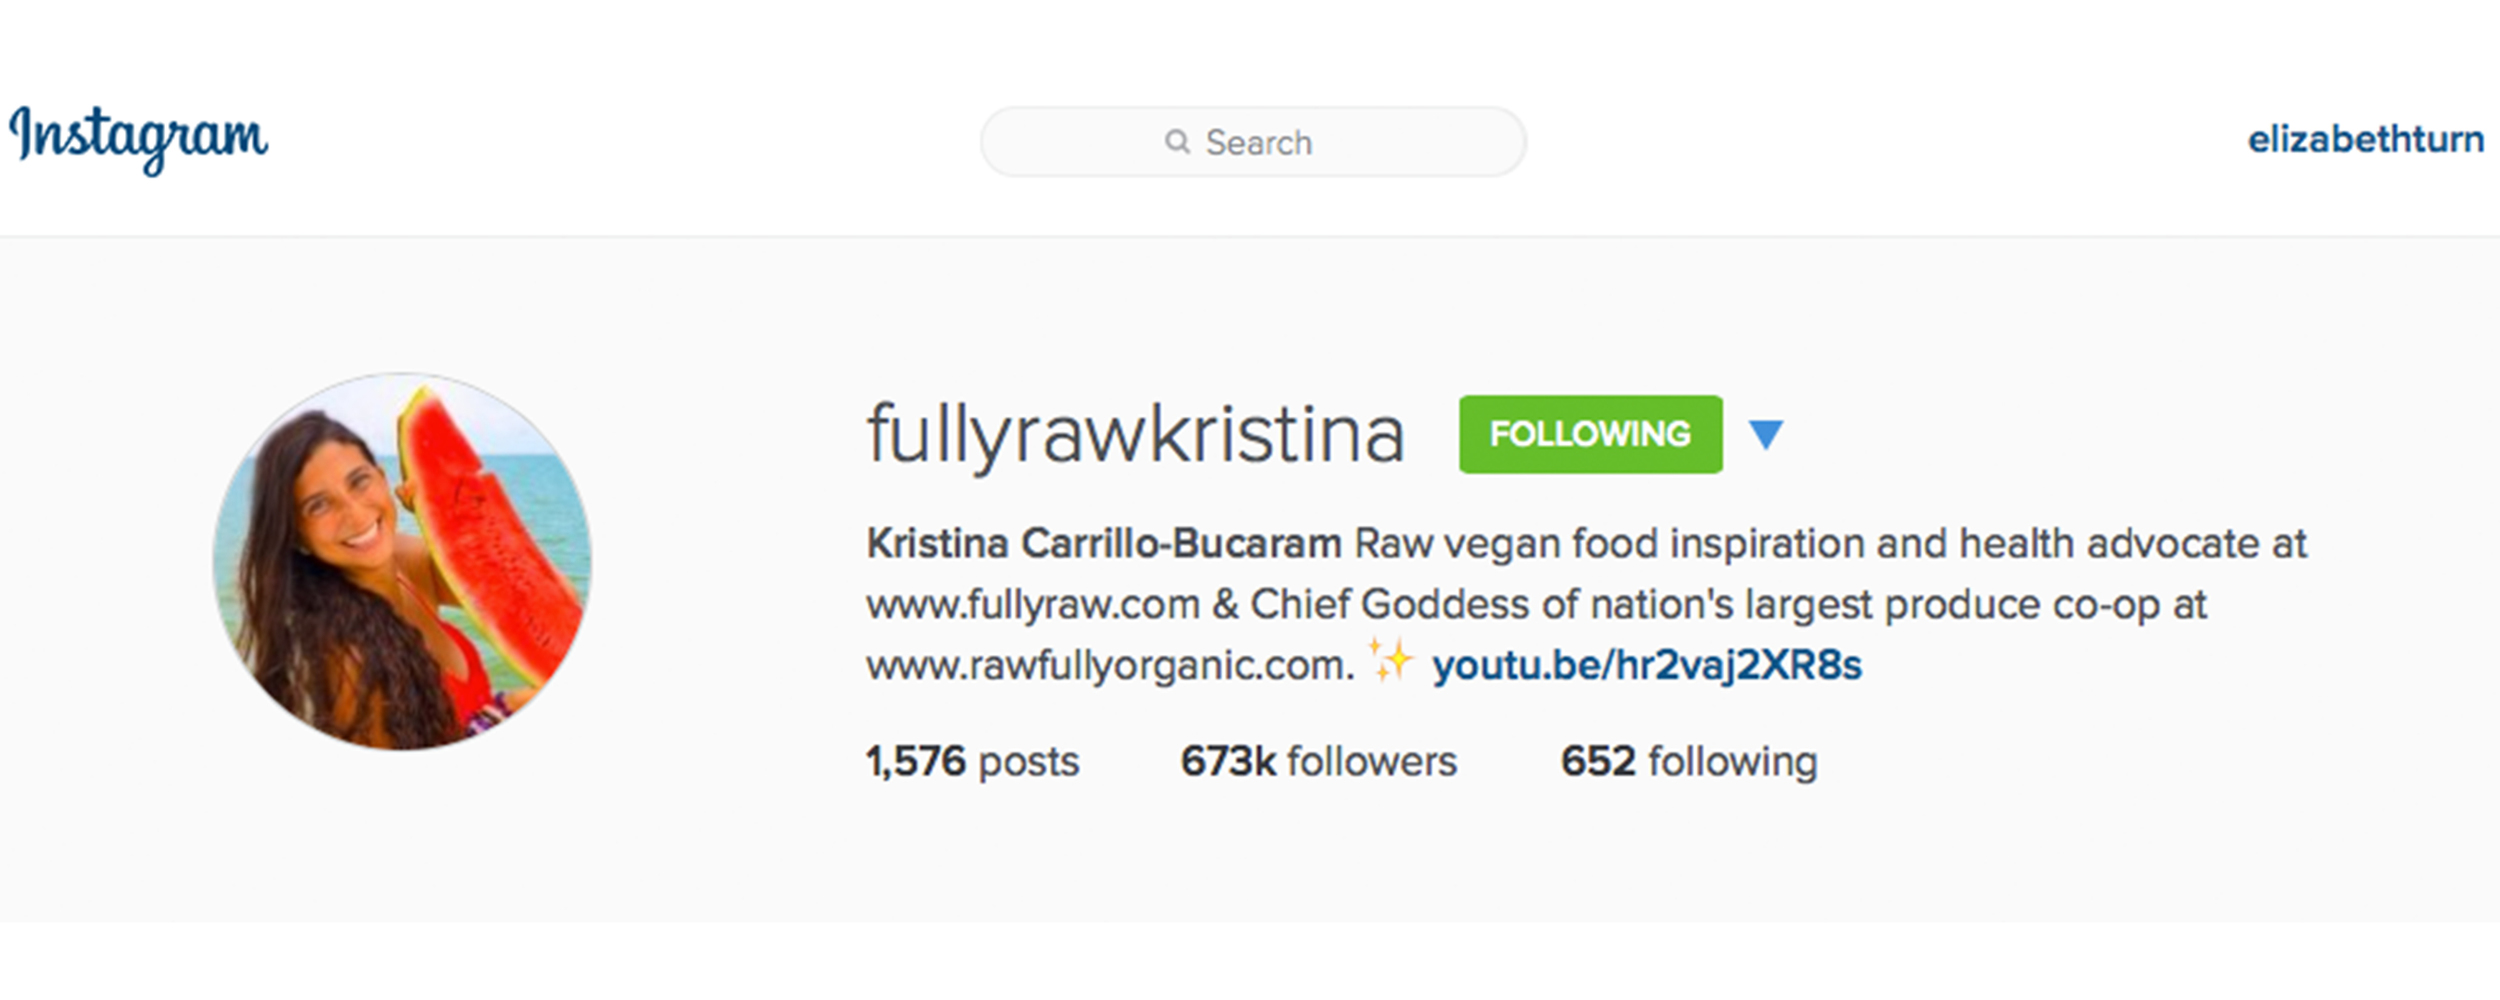 fullyrawkristina on instagram from plantbasedbride.com